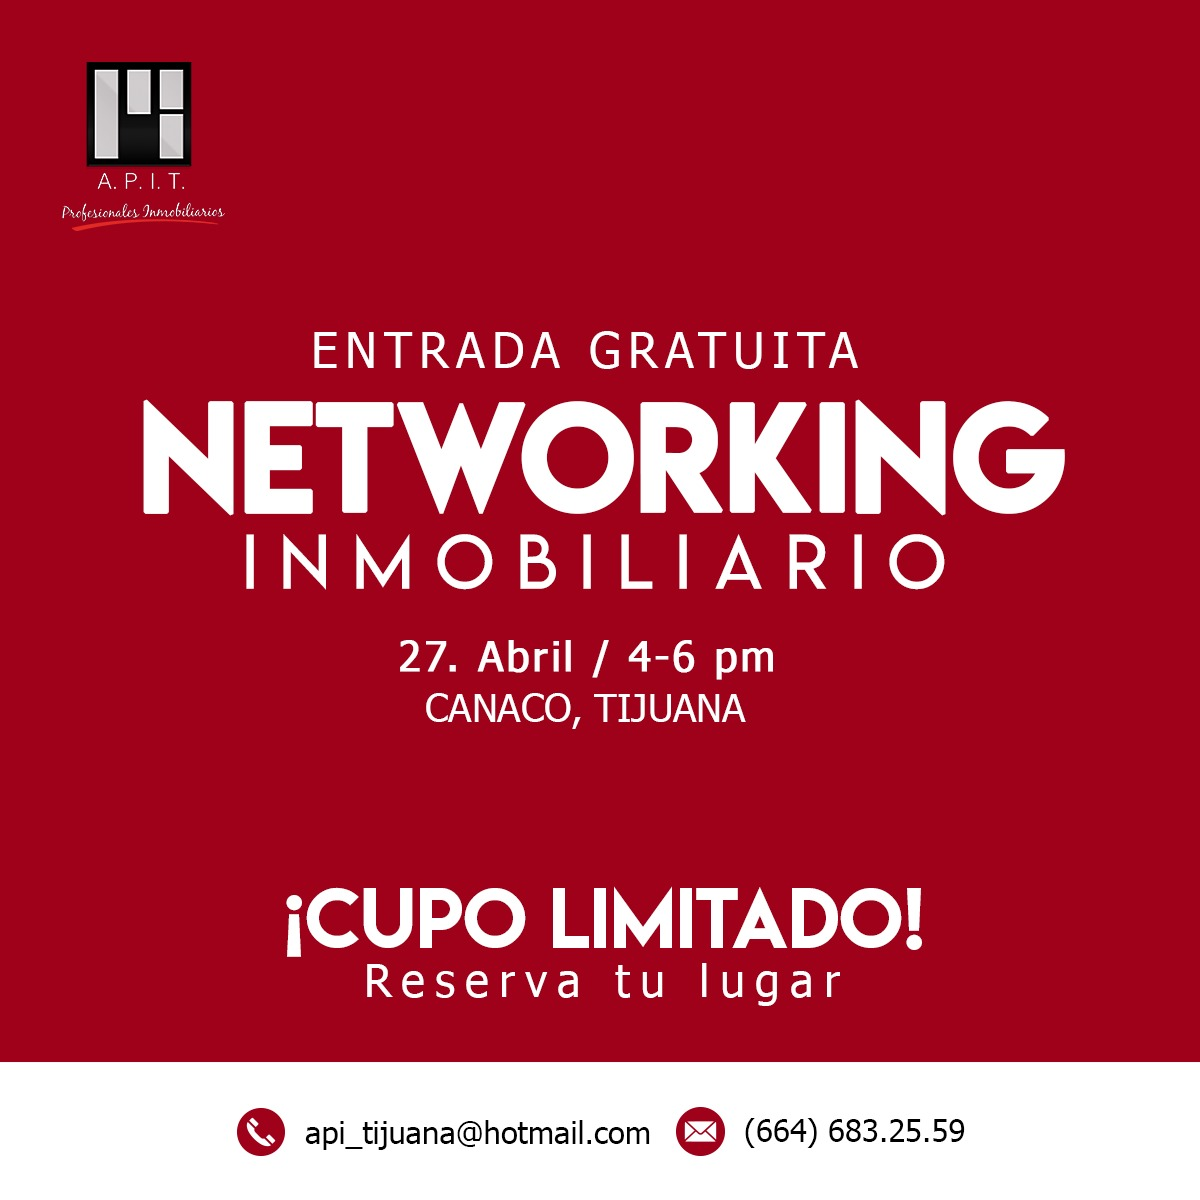 NetworkingInmobiliario2018.jpg